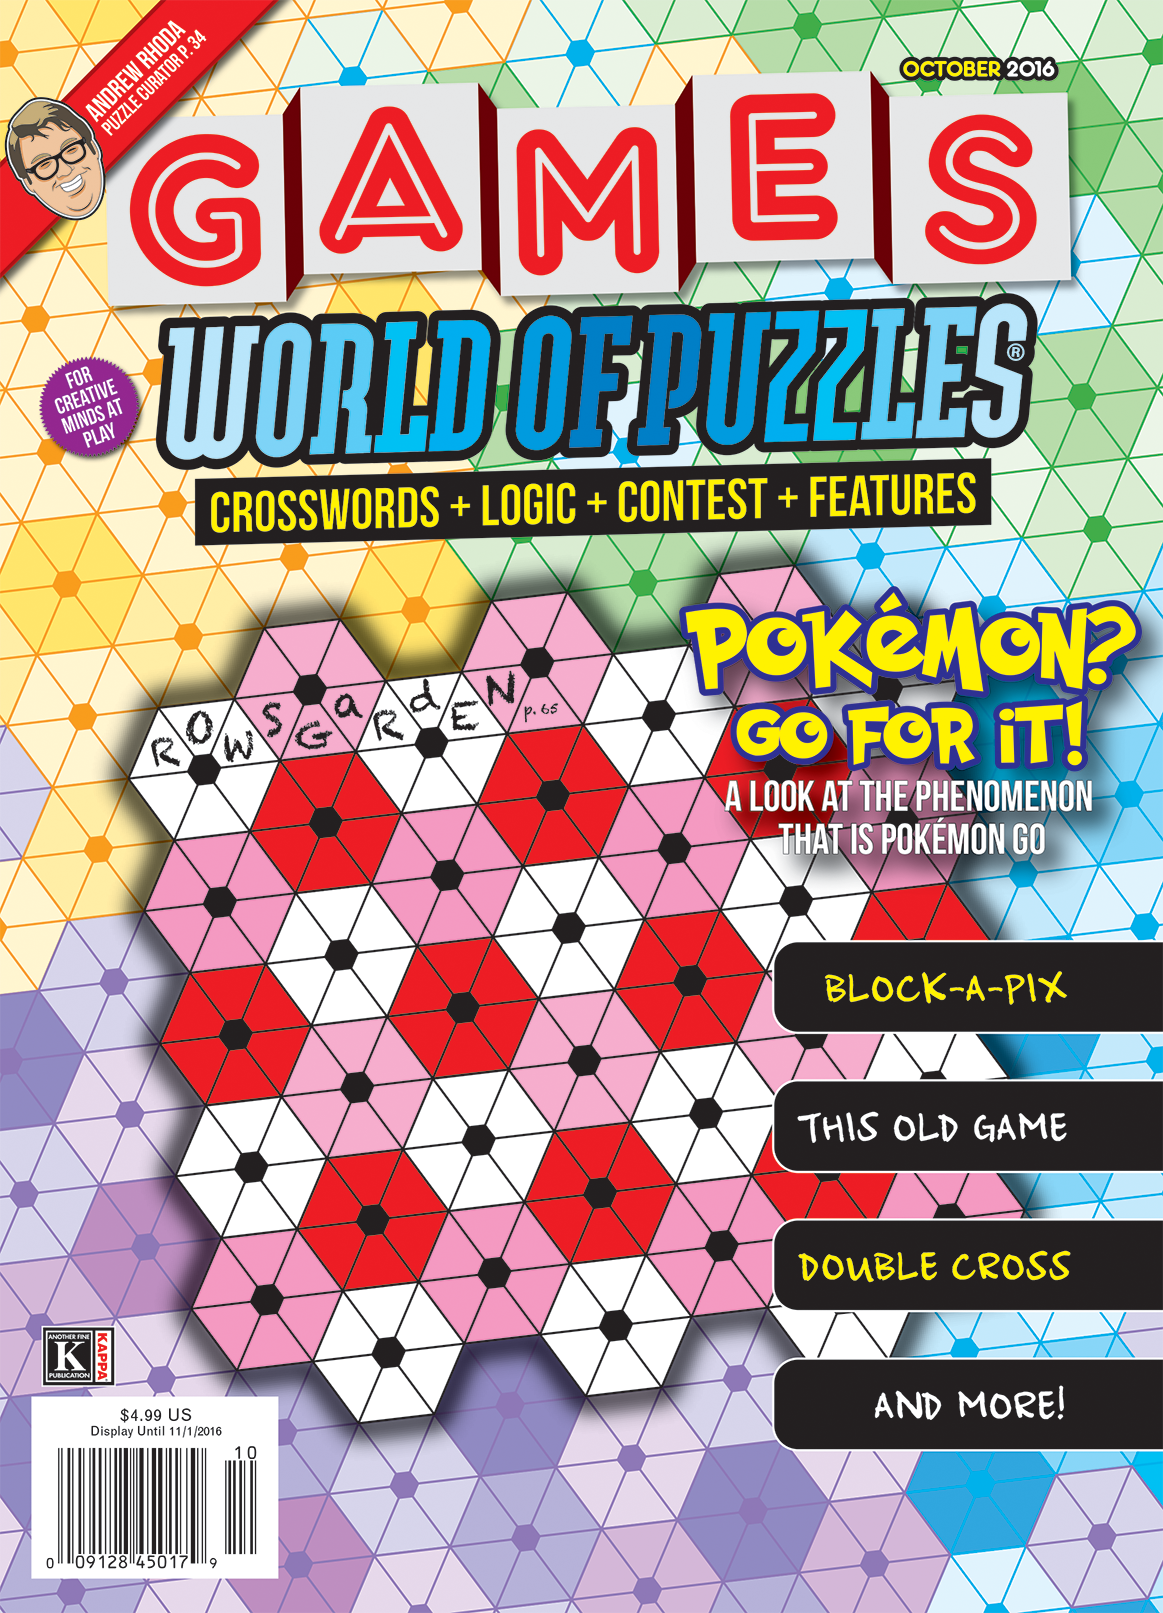 products u2013 games world of puzzles